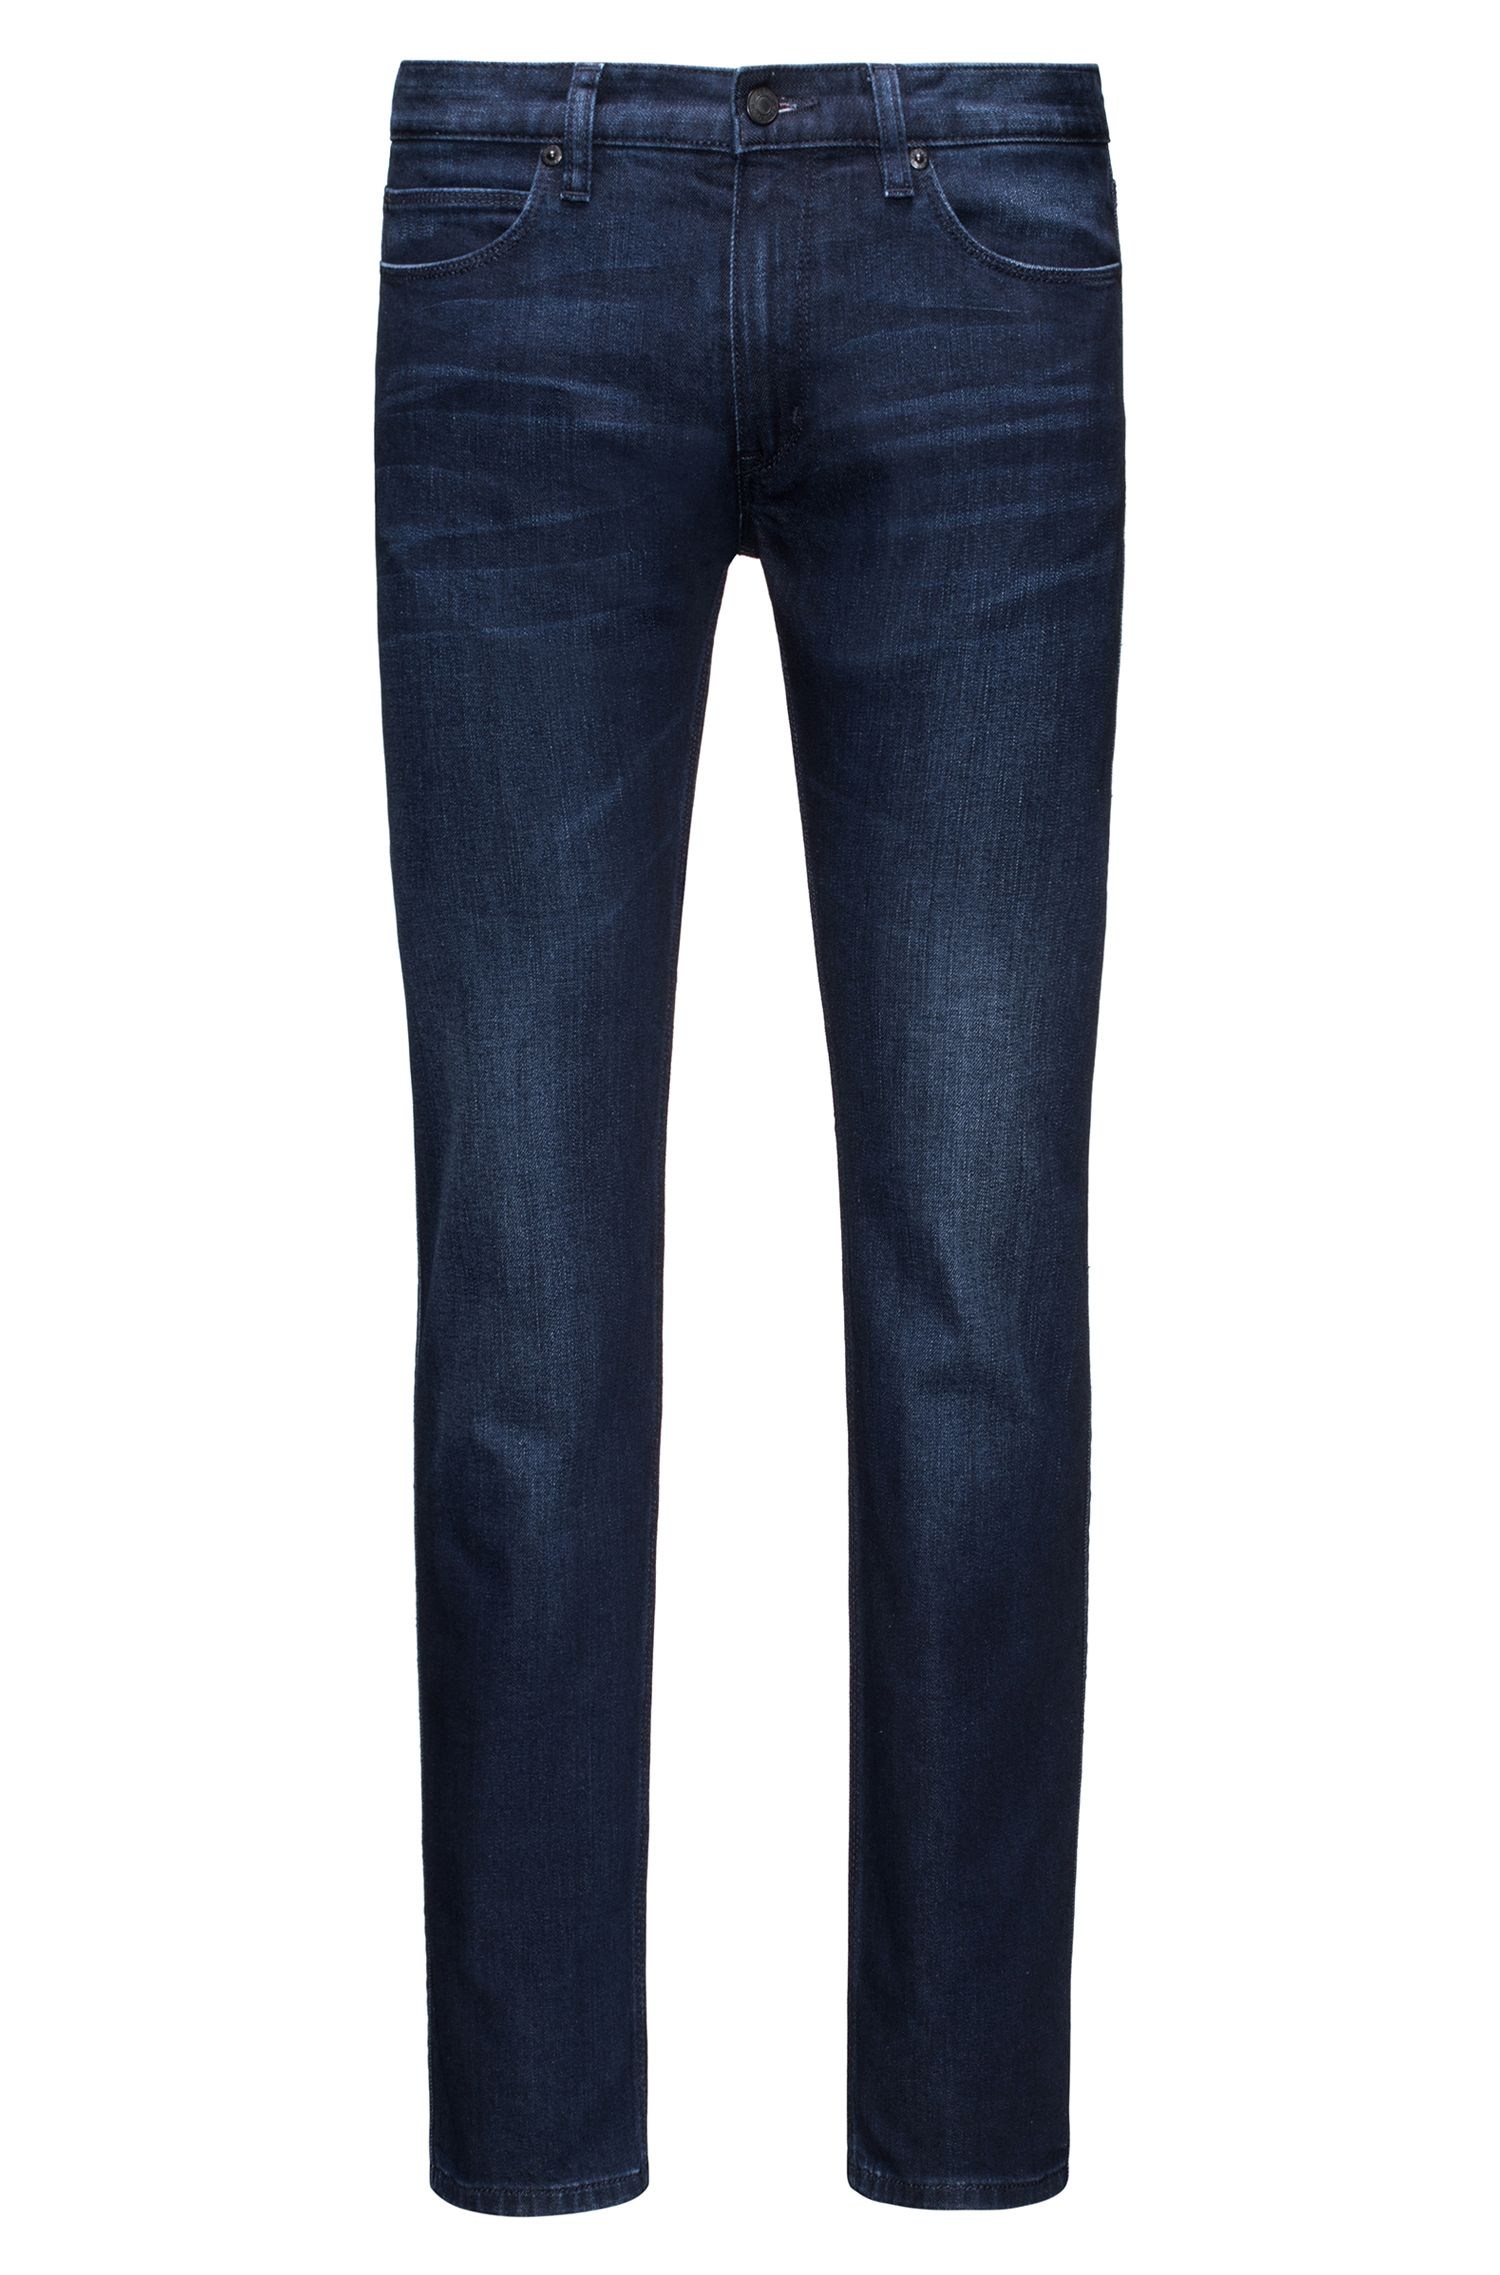 Slim-Fit Jeans aus komfortablem Stretch-Denim mit Stone-washed-Effekt